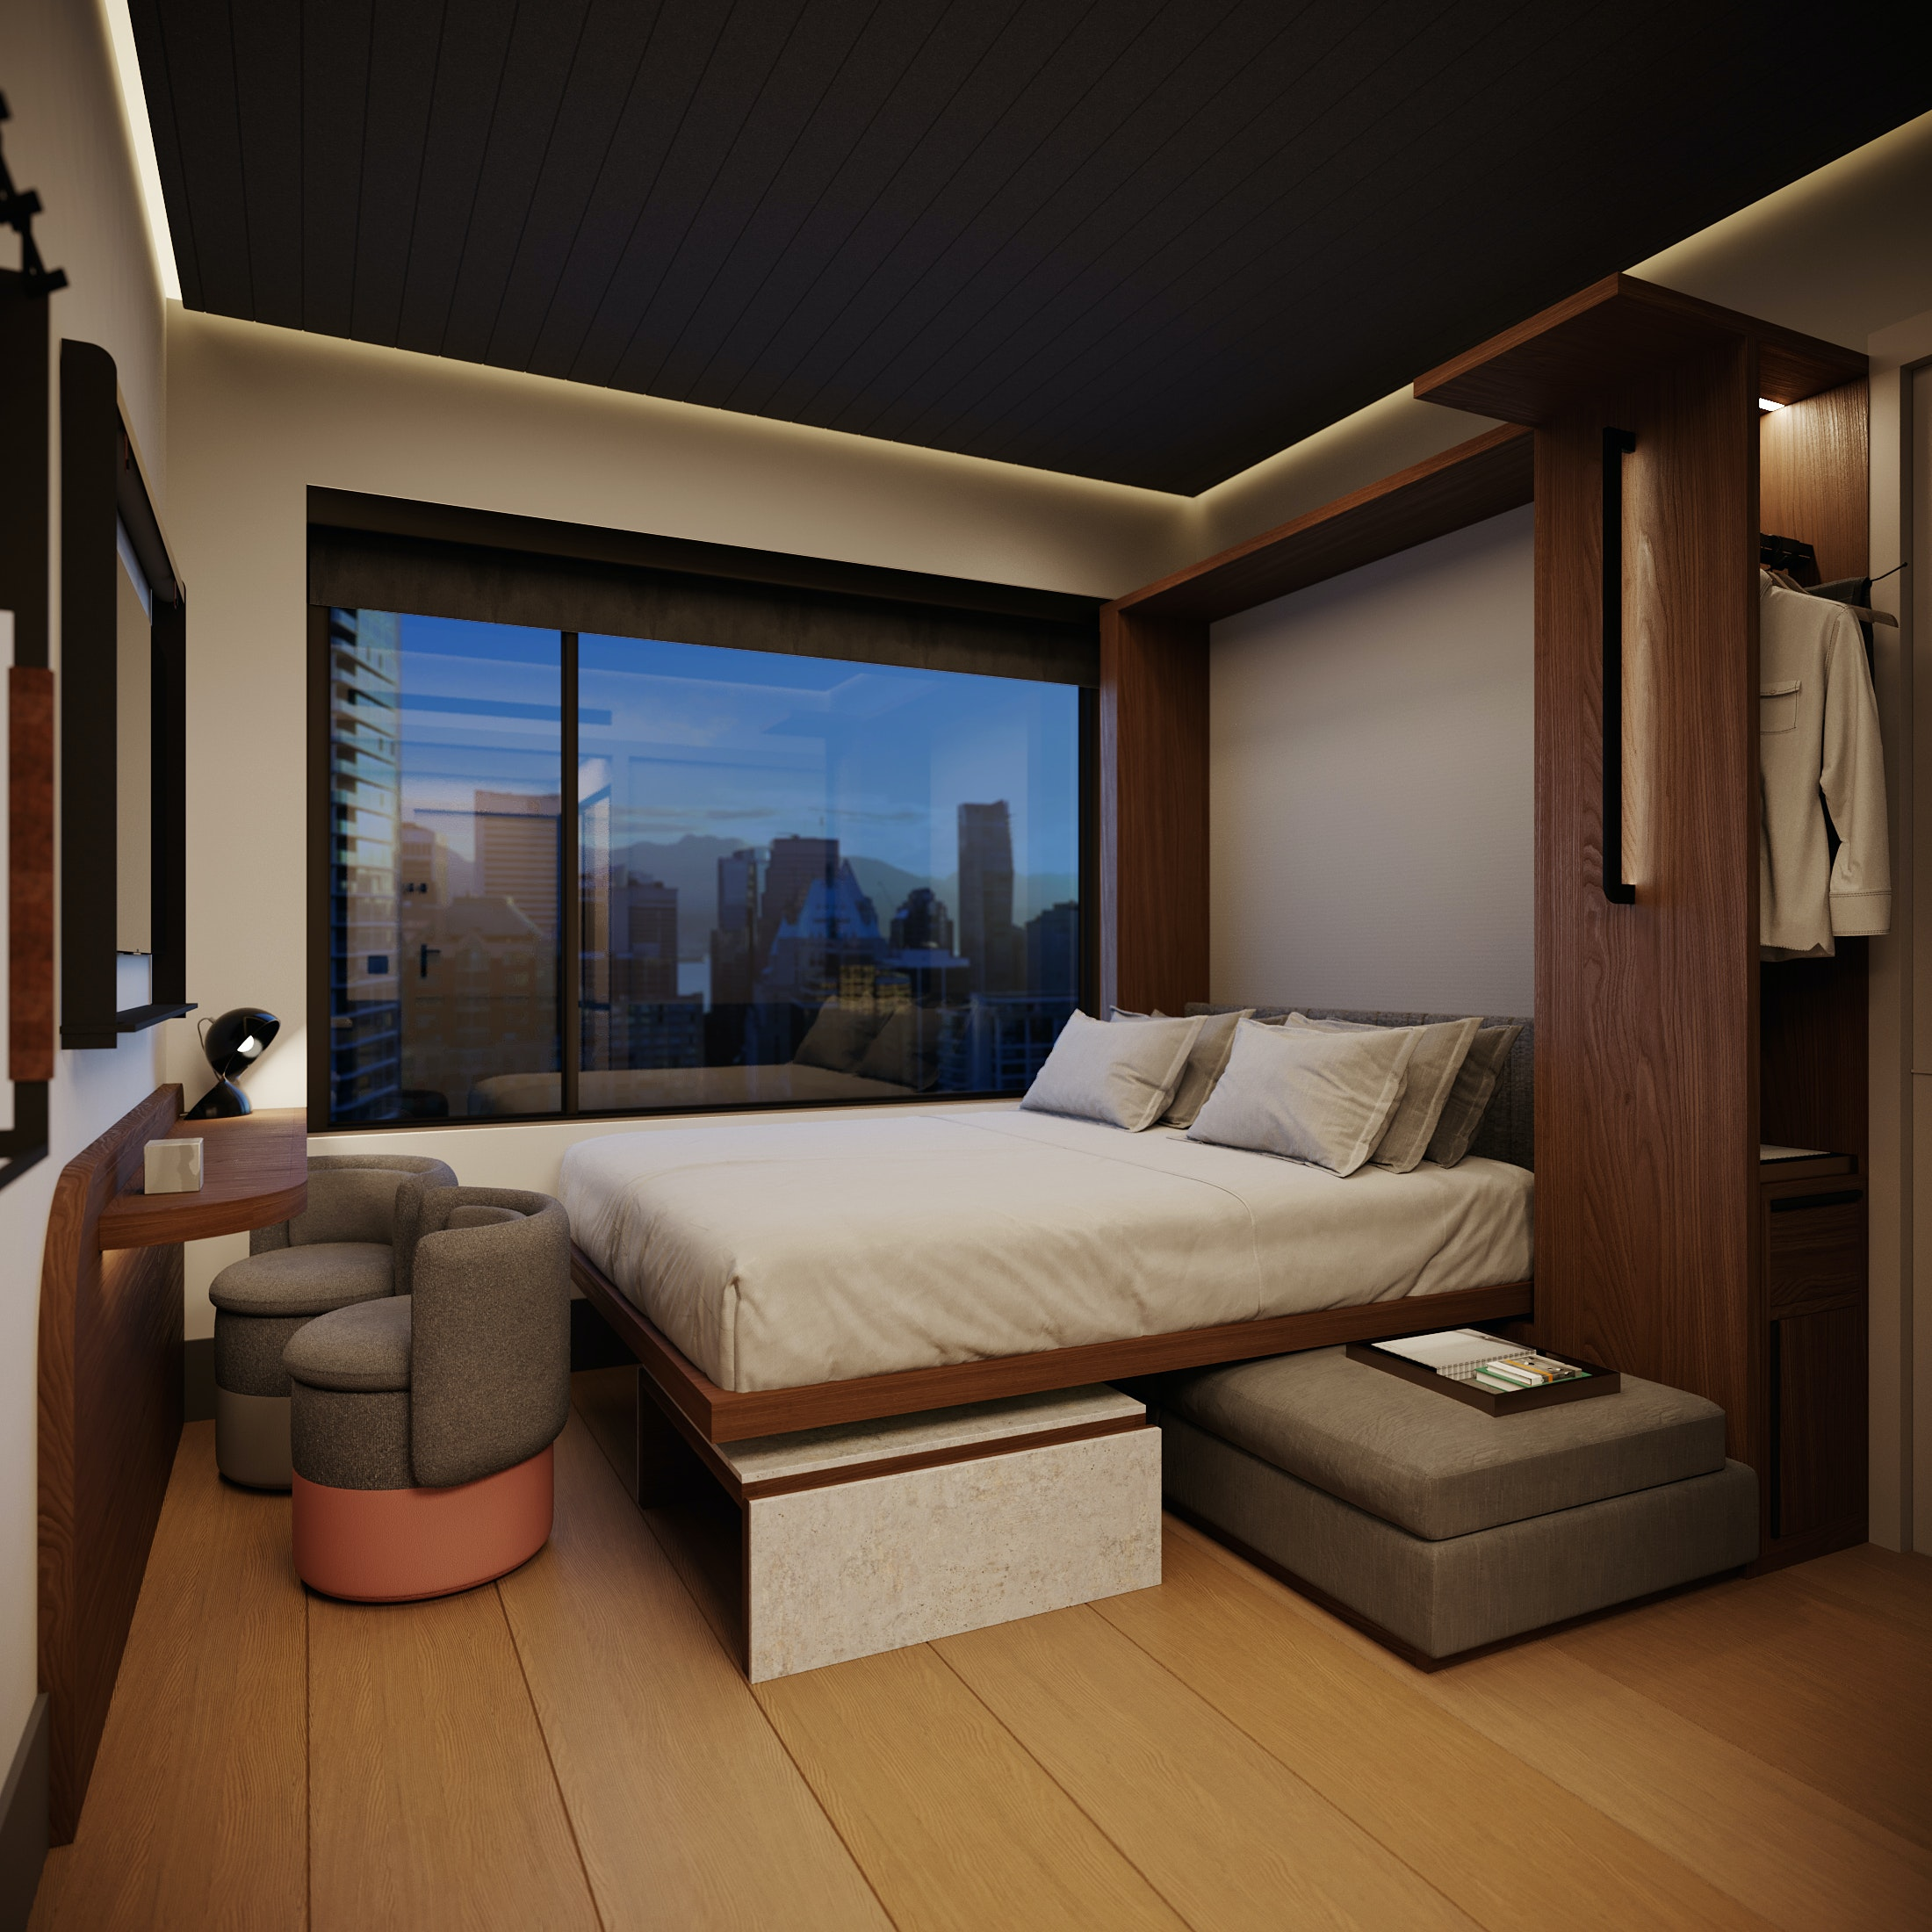 A bedroom with a Murphy bed pulled down.